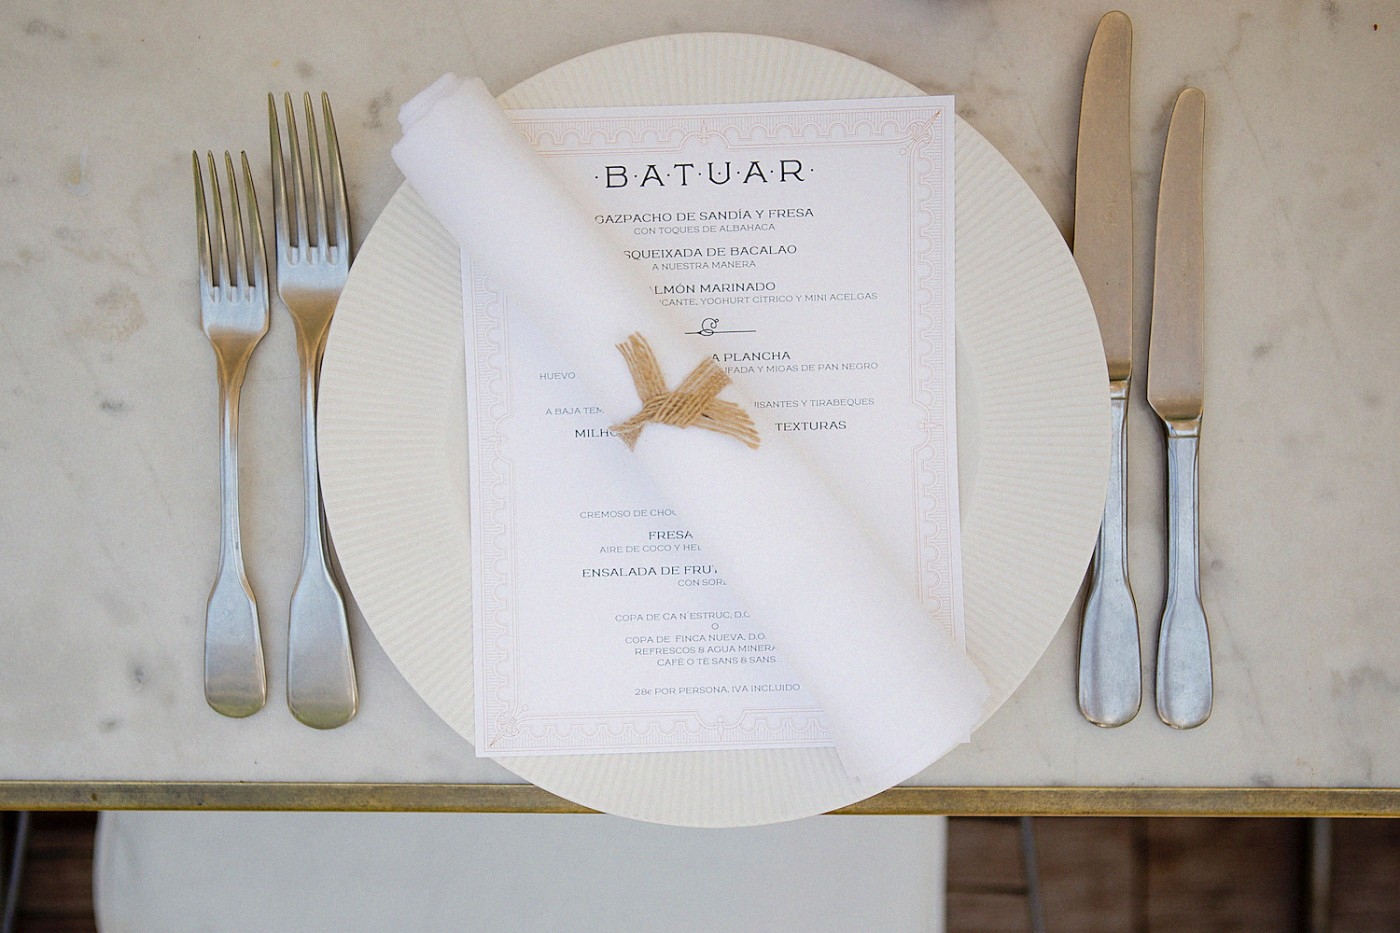 batuar at cotton house hotel barcelona _ where to eat in Barcelona _ restaurants Barcelona _ Barcelona food